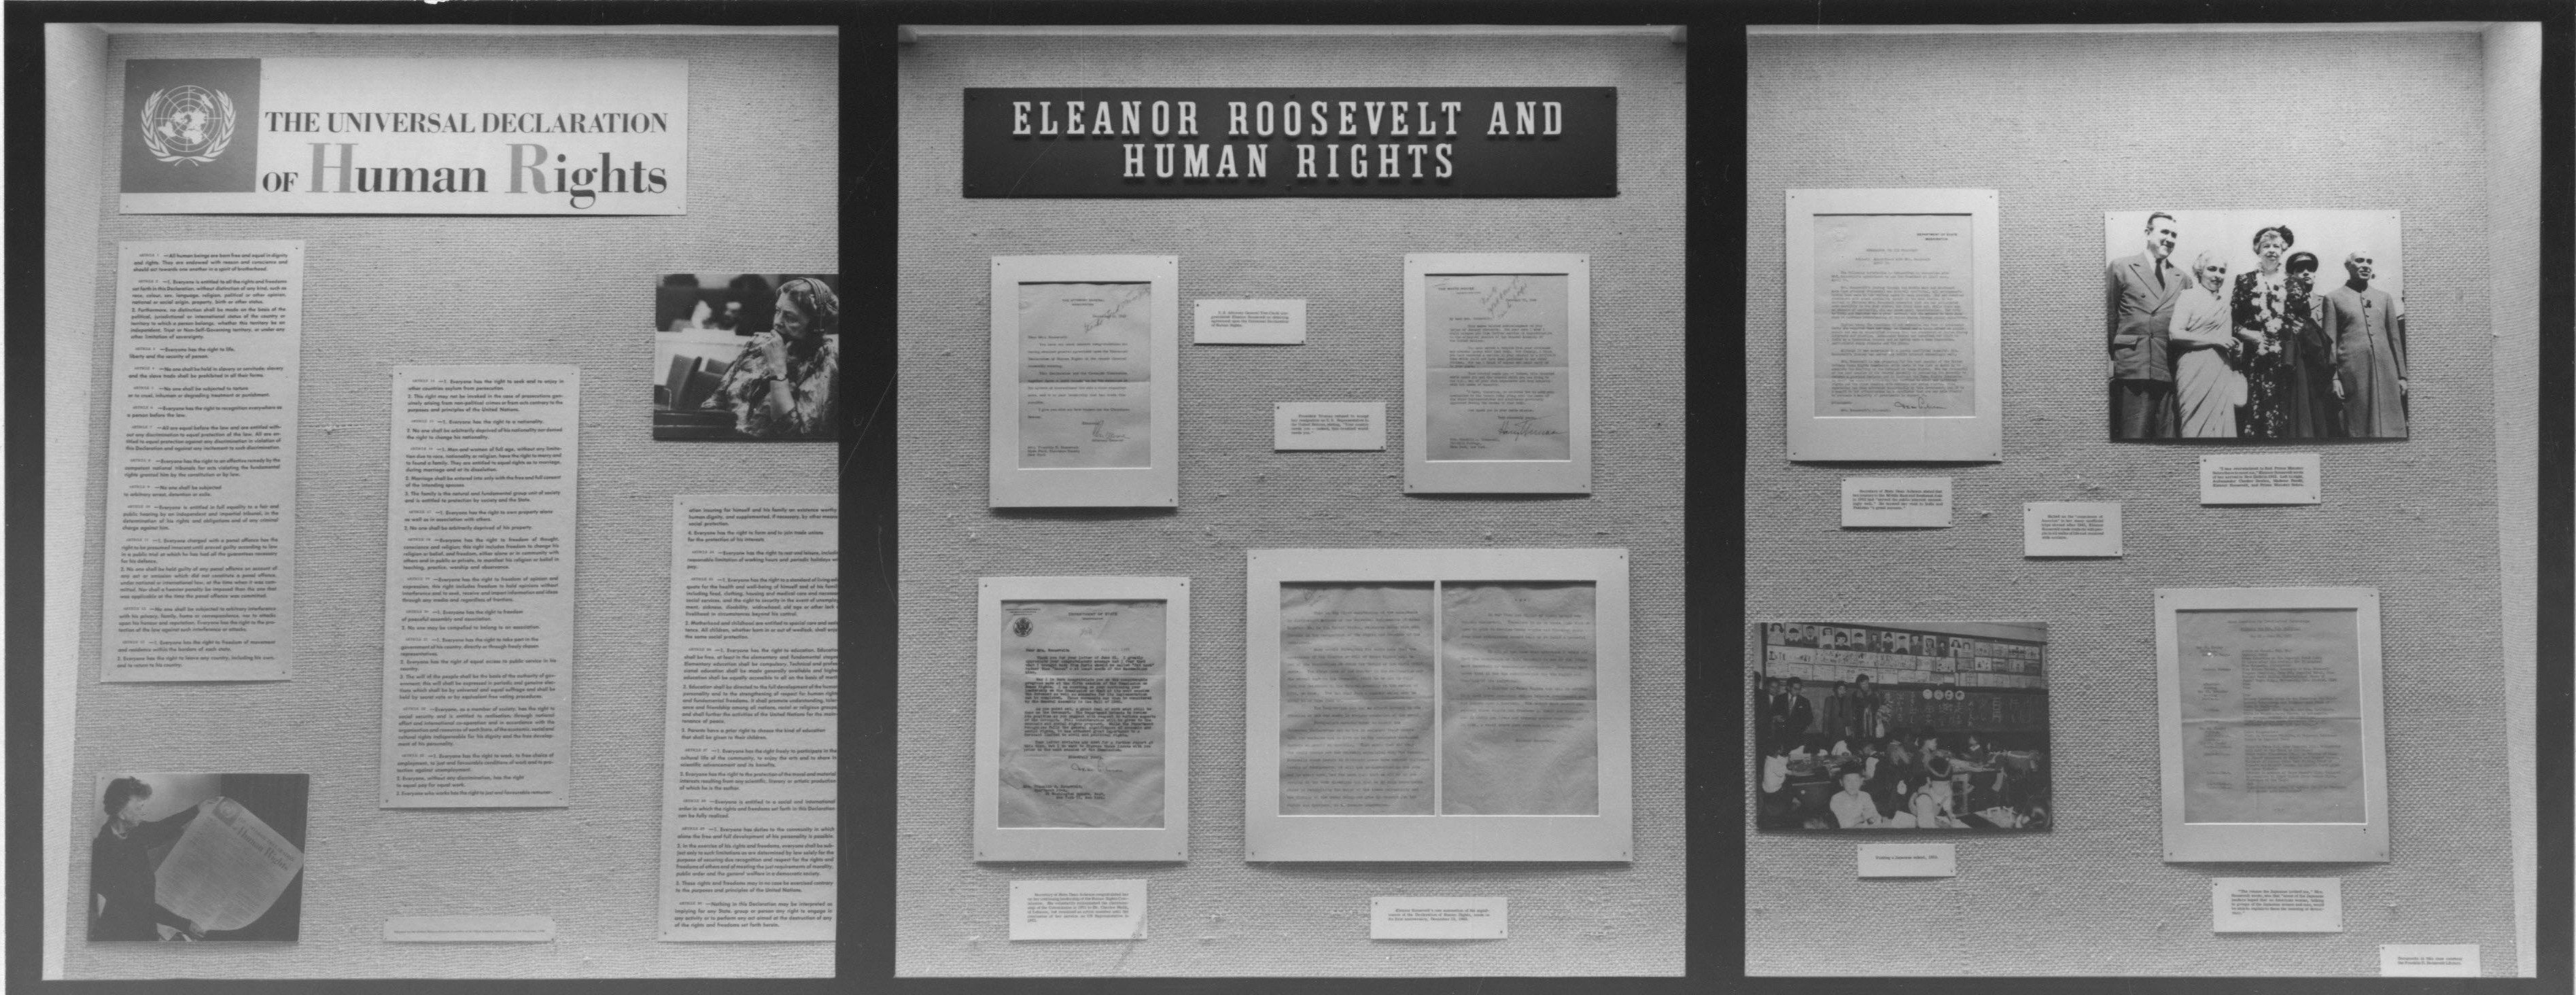 human rights for all pieces of history eleanor roosevelt and human rights exhibit case three 10 1963 national archives identifier 12170776